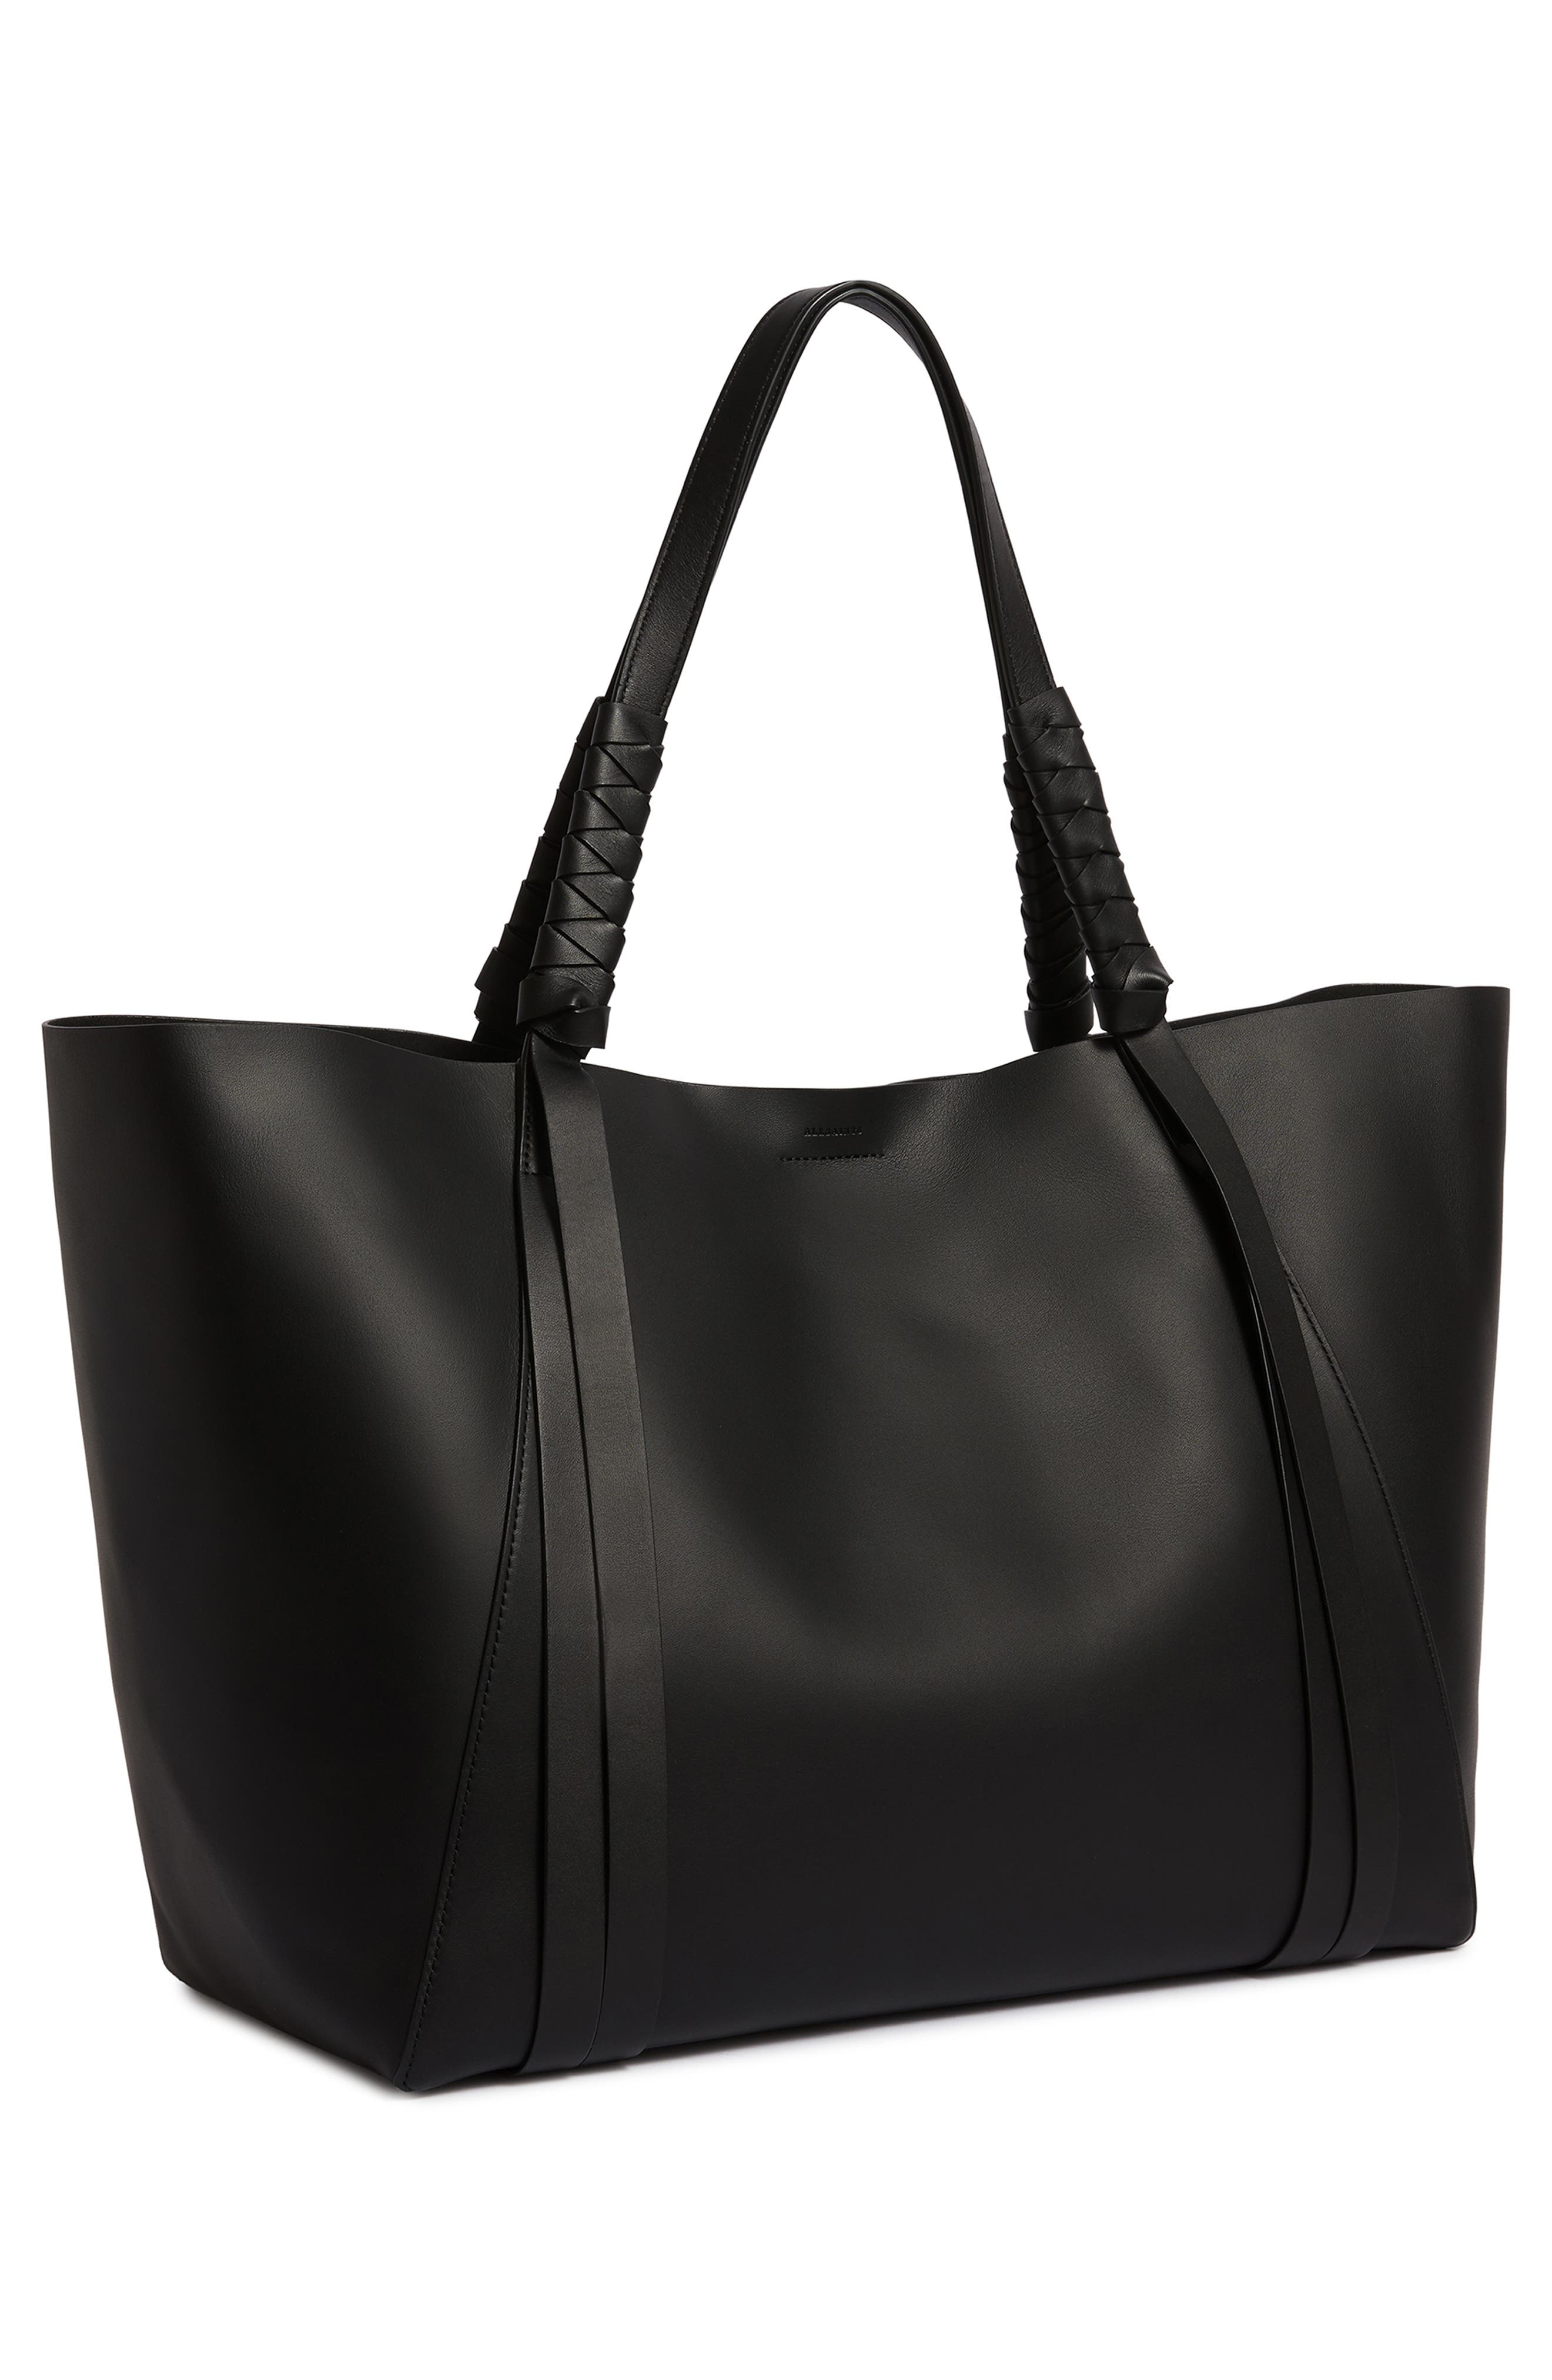 Voltaire Leather Tote,                             Alternate thumbnail 10, color,                             BLACK